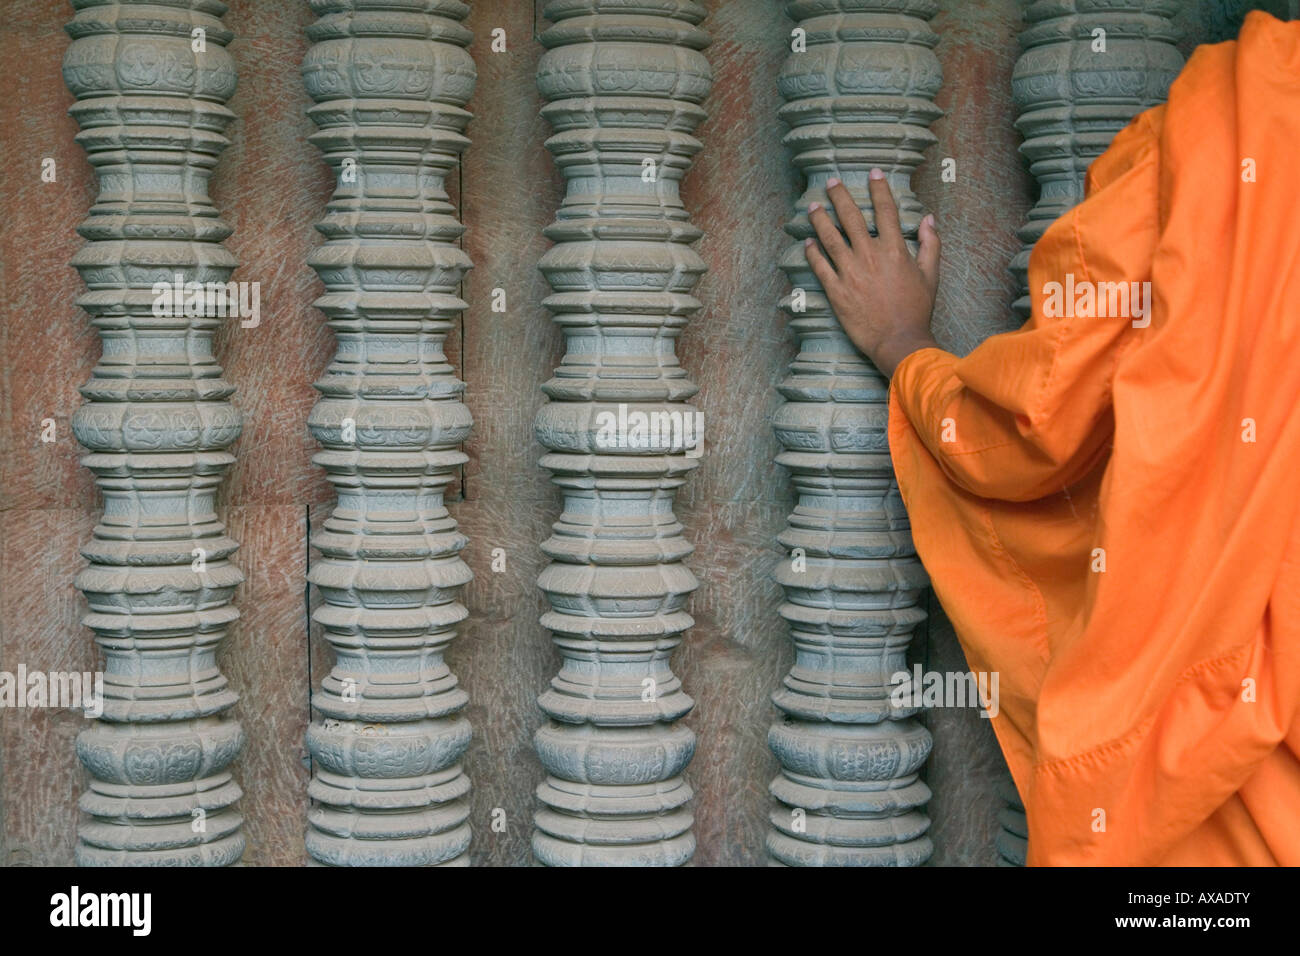 Monk with detailed carving in Angkor Wat Cambodia - Stock Image